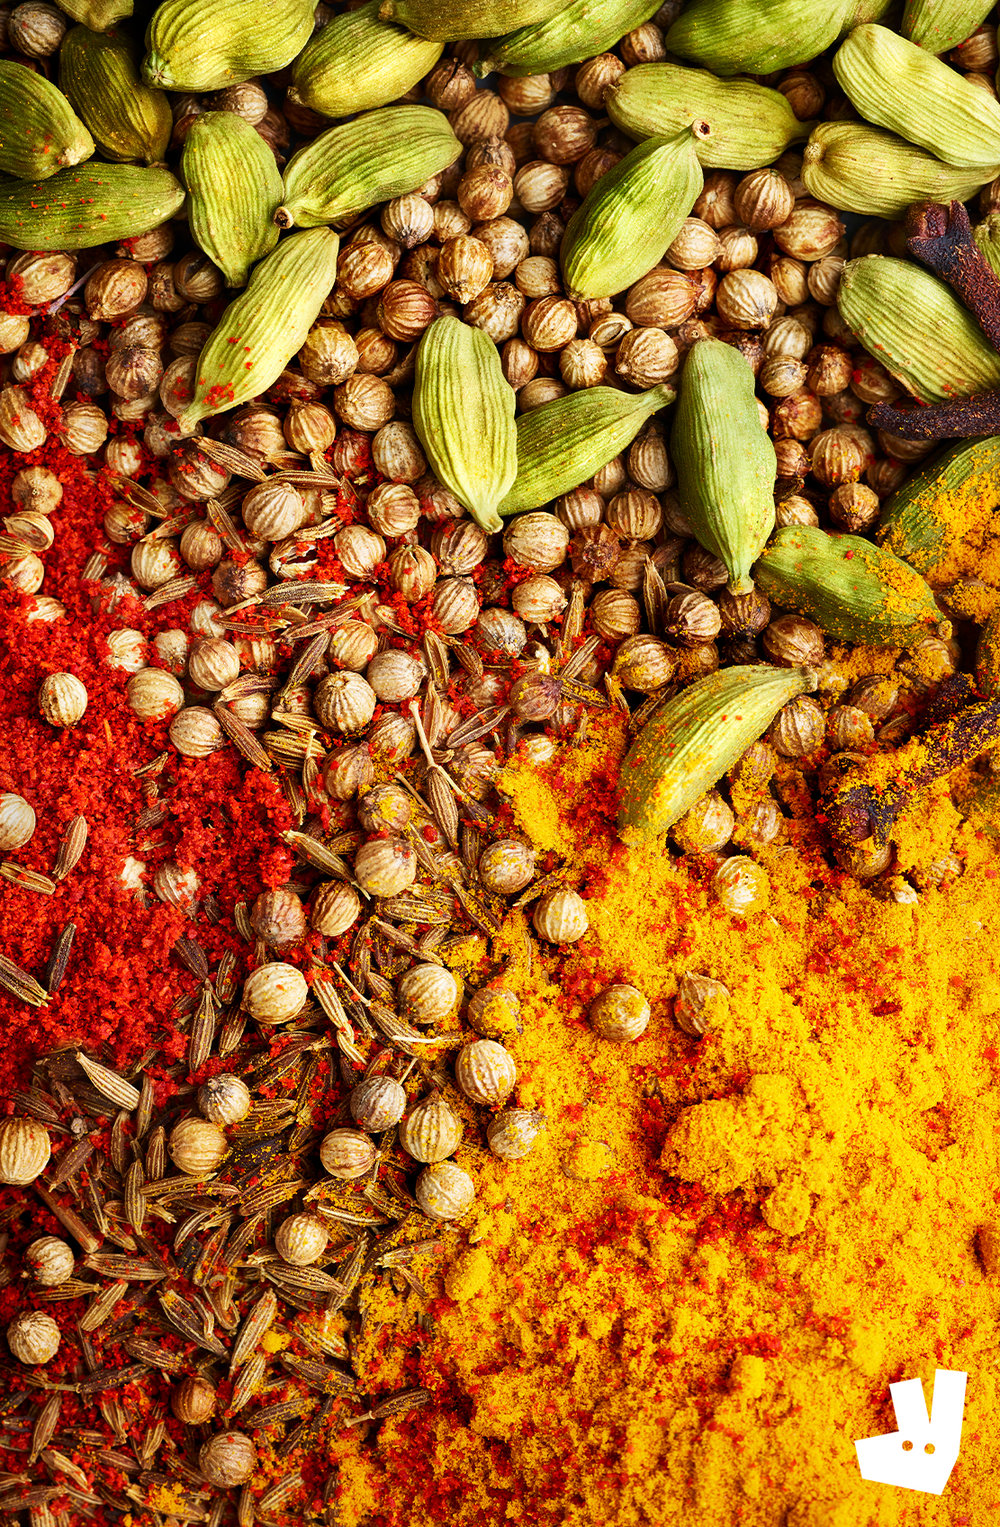 food photographer photography london uk photos england europe eat dinner lunch breakfast brunch tasty delicious drinks cocktails restaurant recipe cookbook cocktail advertising deliveroo take away fast delivered curry indian lamb naan bread chilli coriander cumin tomato spice spicy hot jalfrezi bhuna rogan josh vindaloo korma india cardamom turmeric